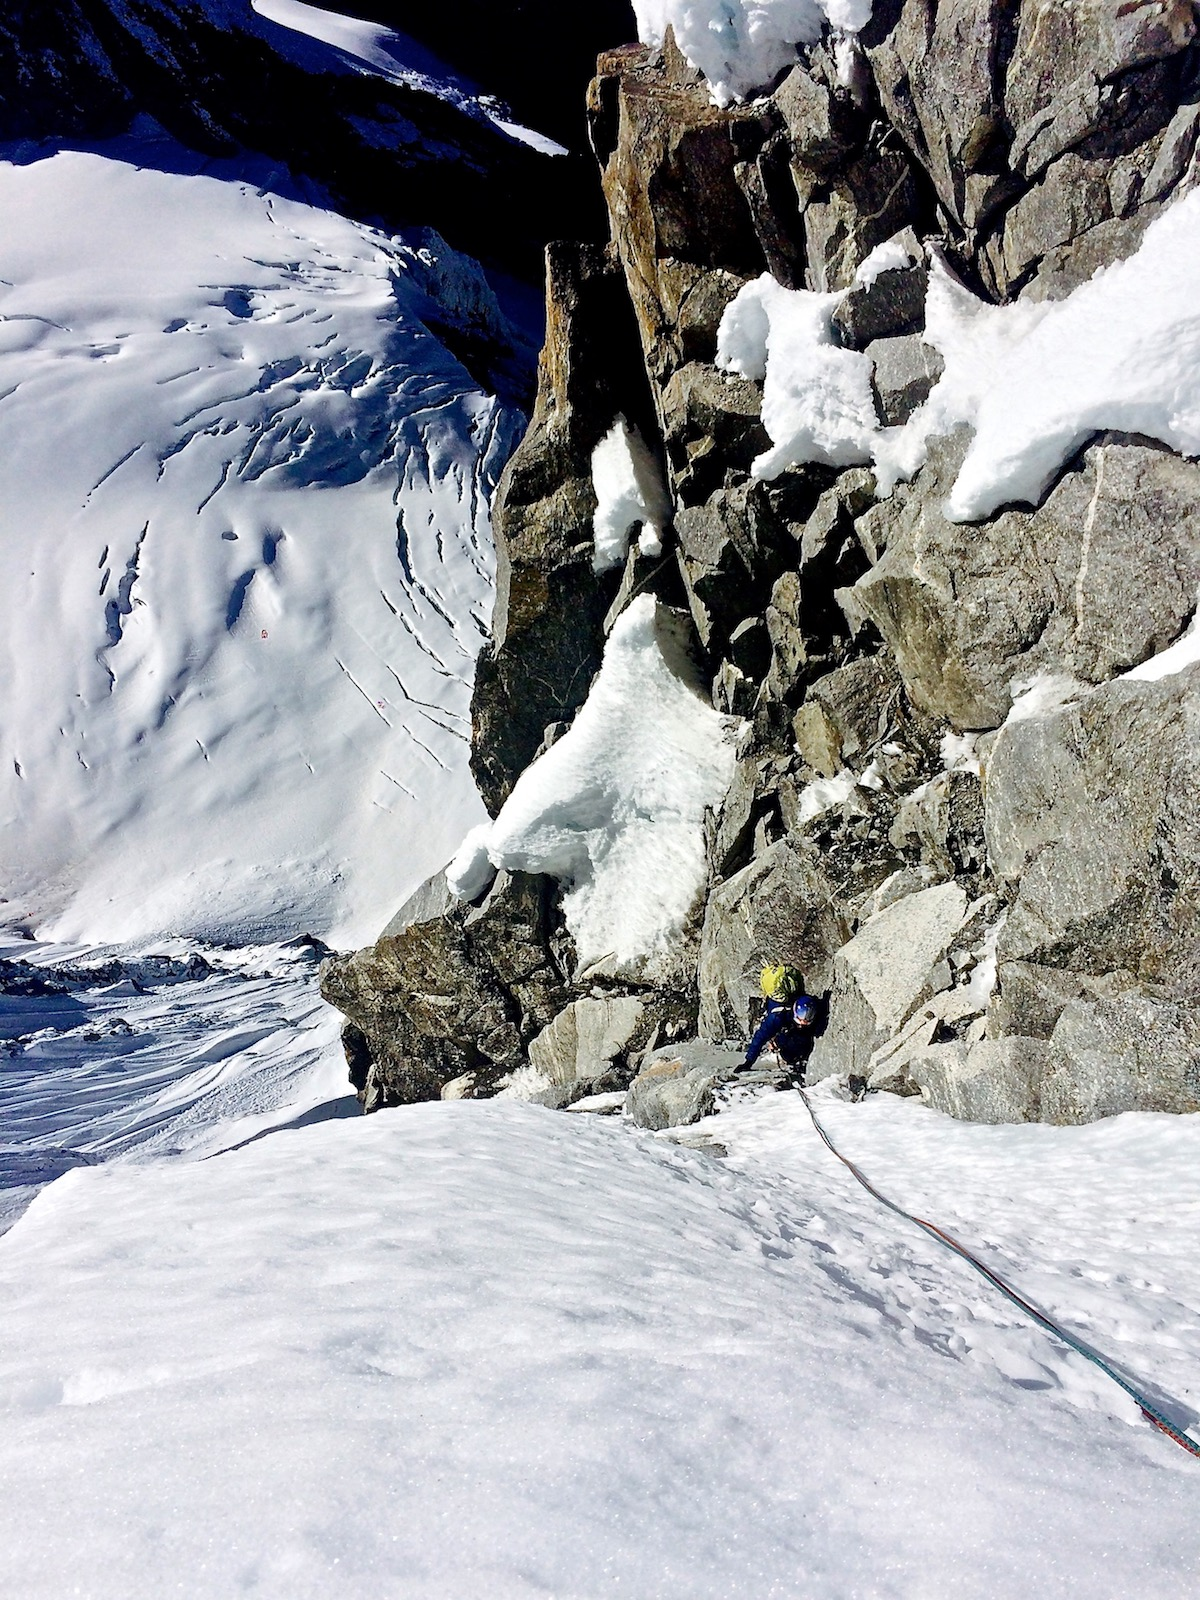 Mirhashemi follows one of the M5 pitches on the headwall of Chugimago's west face during the first ascent of Mixed Emotions (M6 AI5, 80 degrees, 900m). [Photo] Mark Pugliese